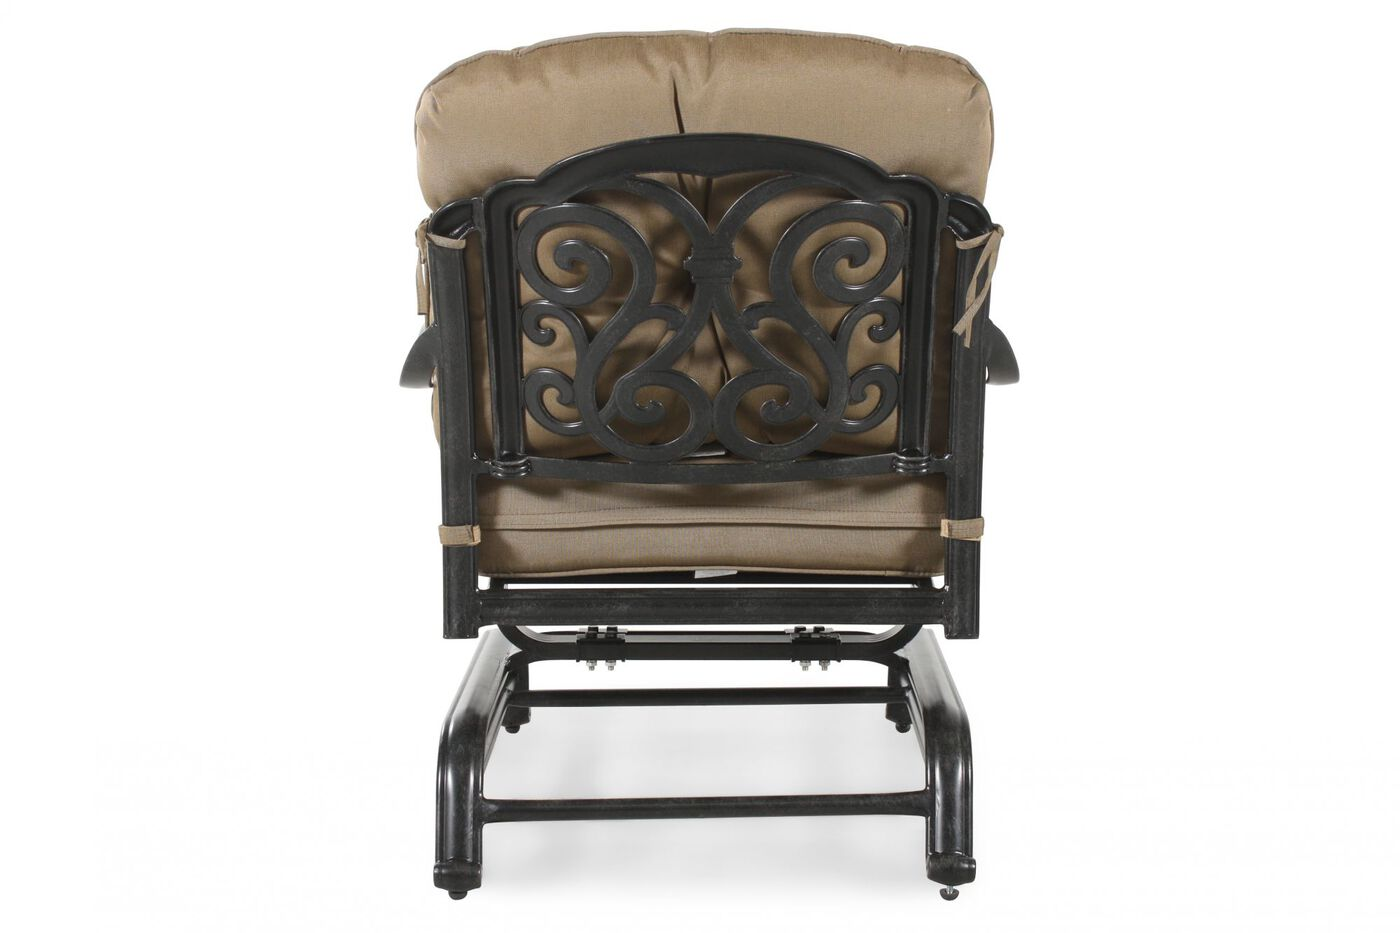 ... World Source St. Louis Club Motion Chair with Cushion ... - World Source St. Louis Club Motion Chair With Cushion Mathis